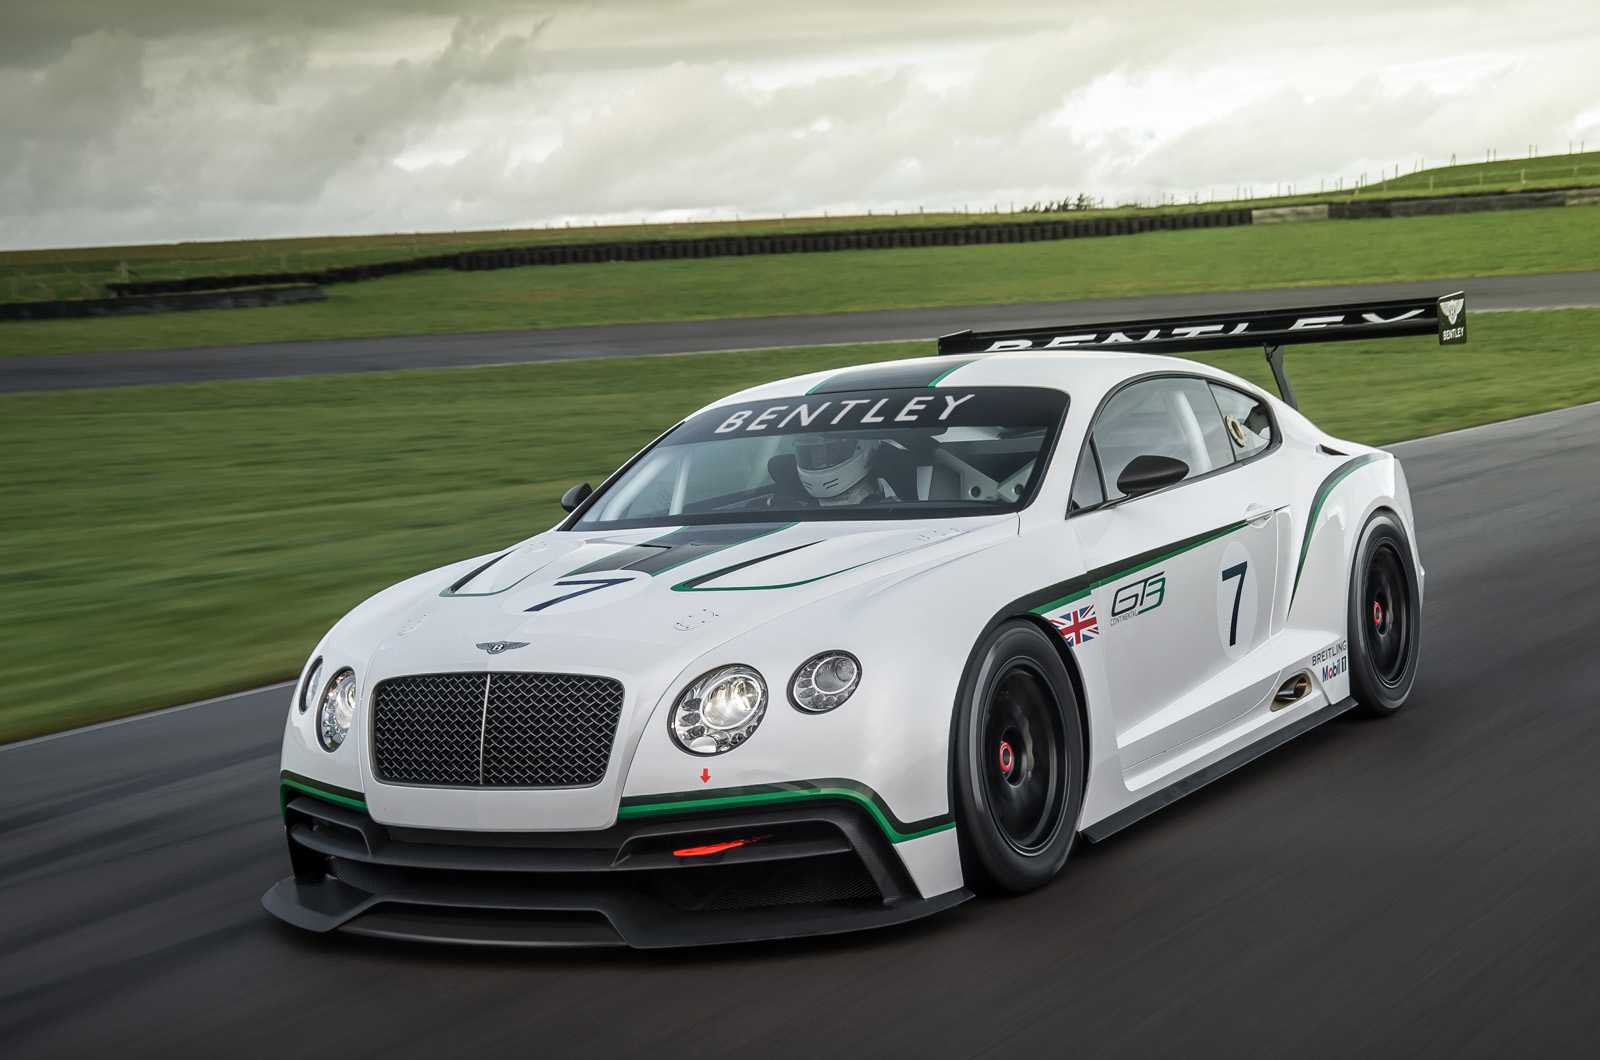 http://images.cdn.autocar.co.uk/sites/autocar.co.uk/files/Bentley-Conti-GT3-1.jpg